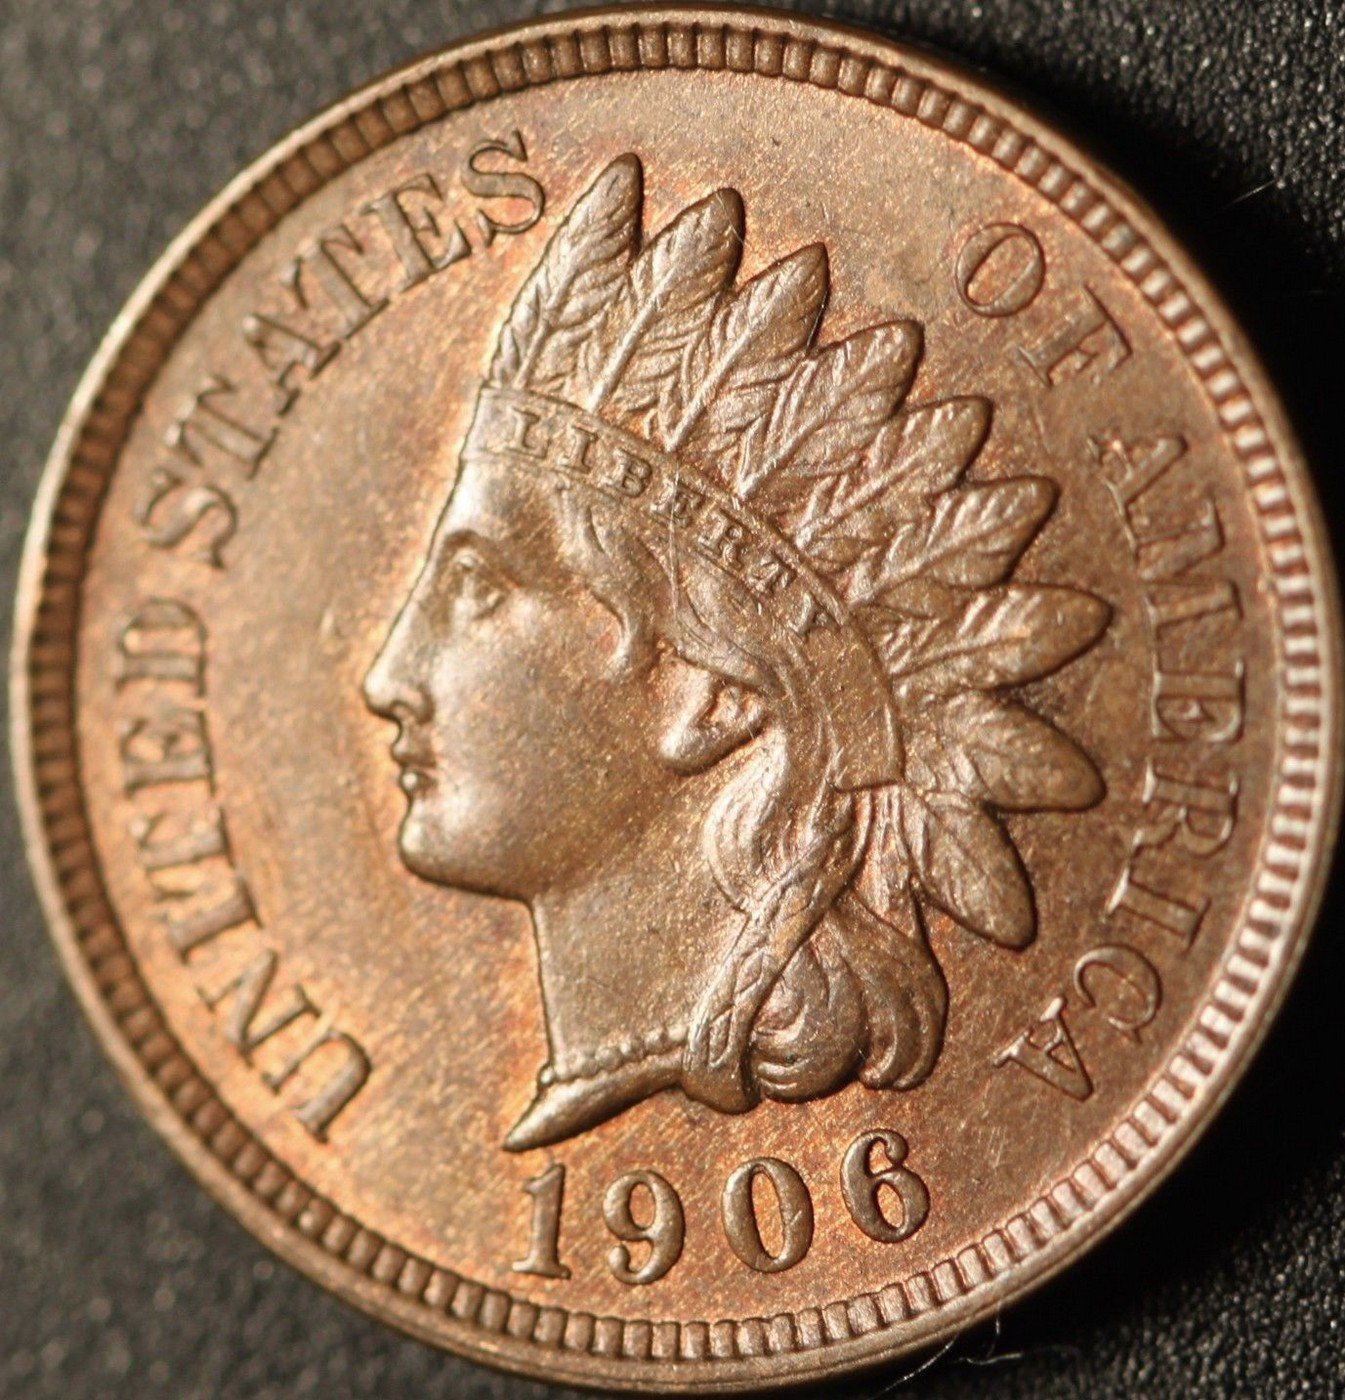 1906 MPD-002, RPD-014 - Indian Head Cent - Photo by Ed Nathanson